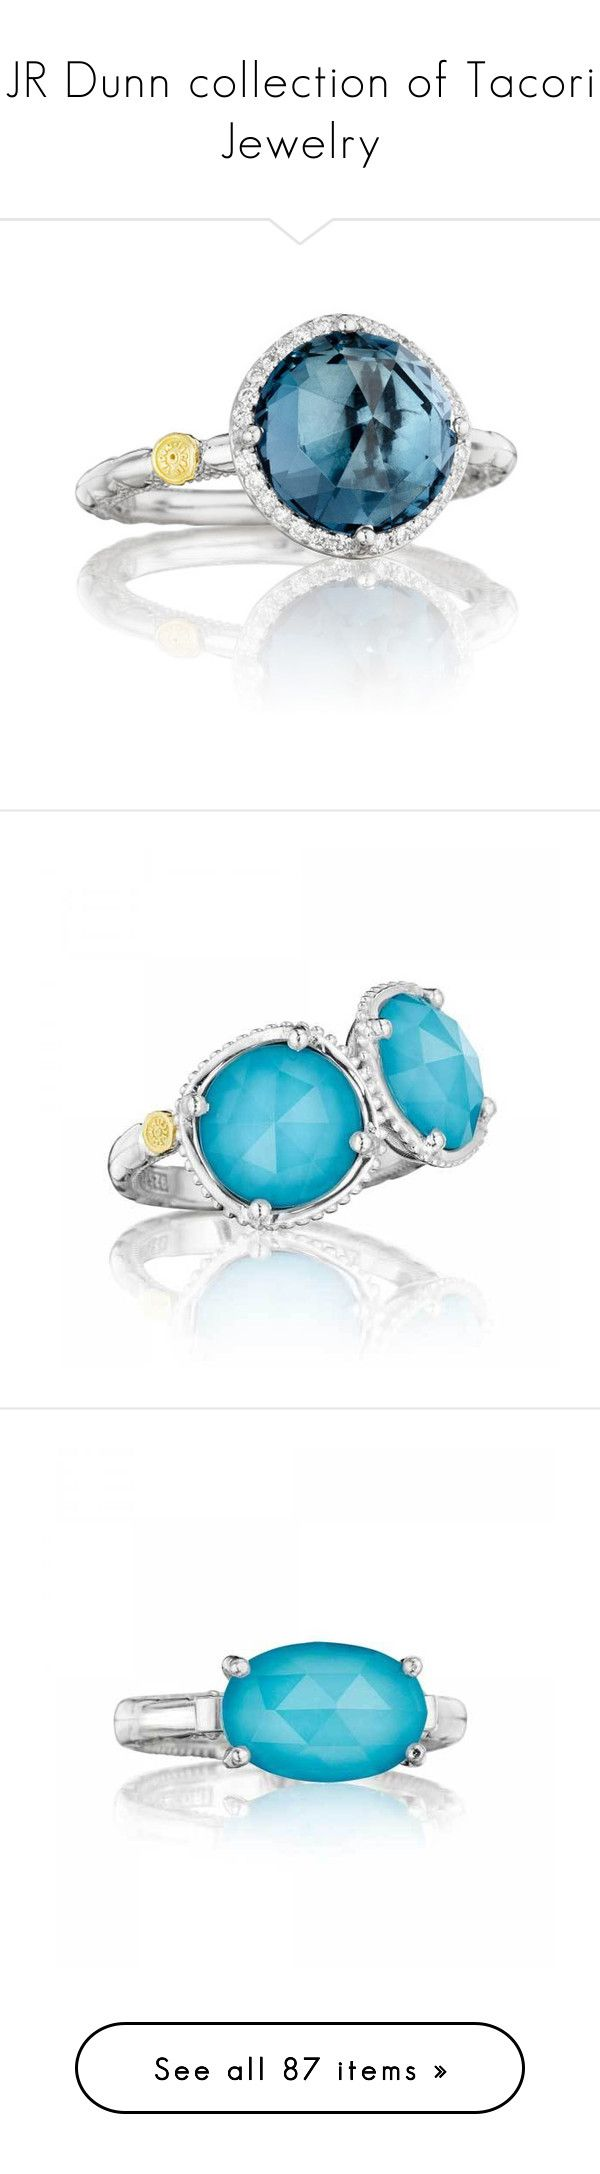 """""""JR Dunn collection of Tacori Jewelry"""" by betiboop8 ❤ liked on Polyvore featuring logo, text, jewelry, rings, accessories, tacori jewelry, halo diamond ring, london blue topaz ring, tacori rings and london blue topaz jewelry"""